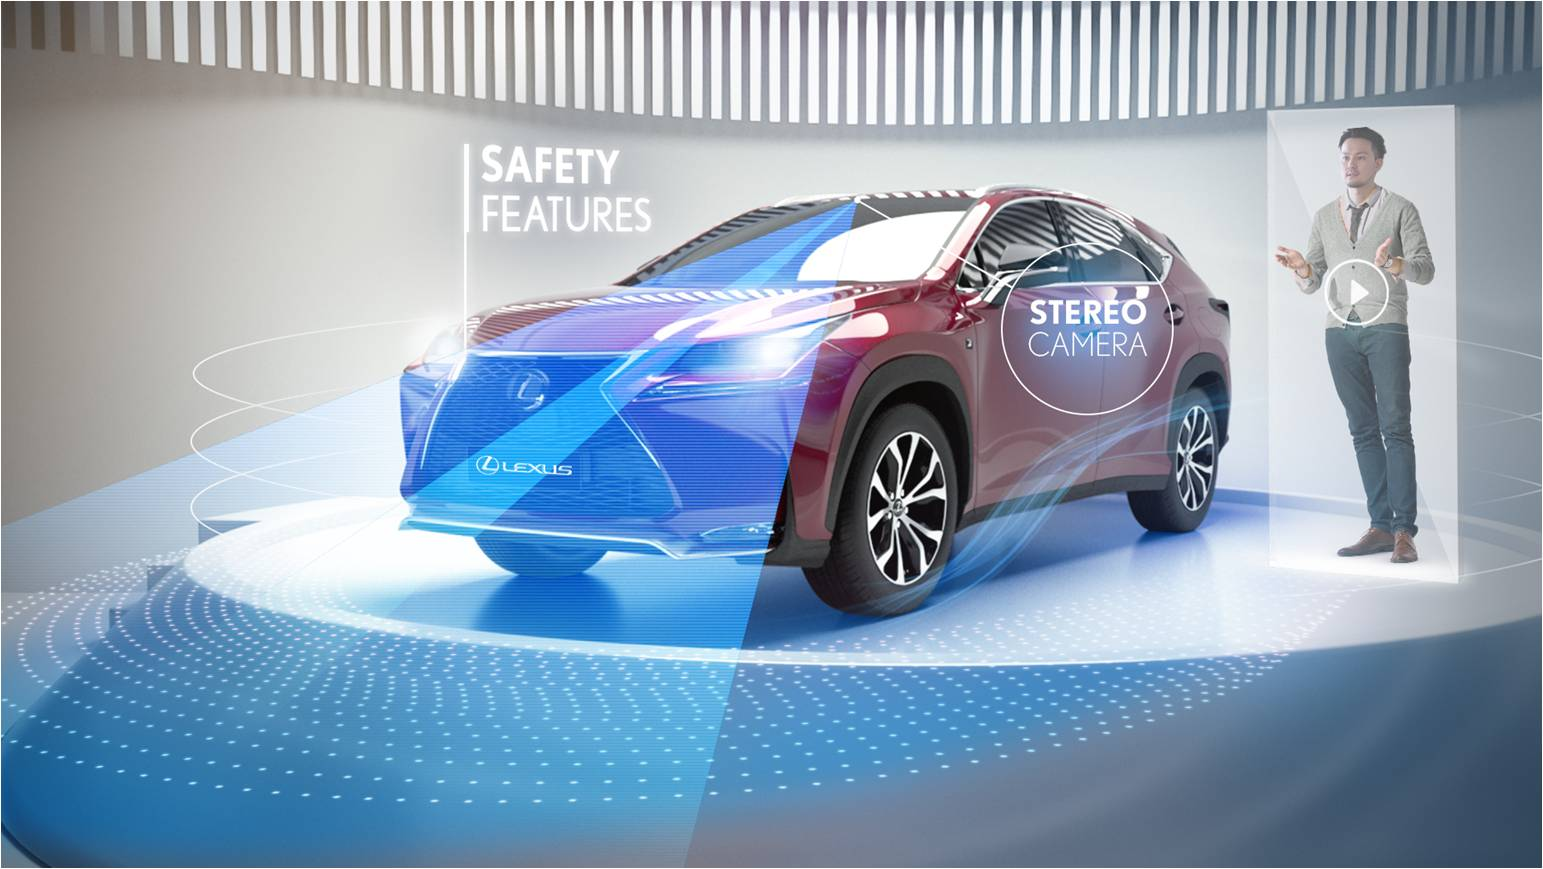 Vok Dams Debuts New Style Press Conference With Lexus At The Iaa Kongres Europe Events And Meetings Industry Magazine